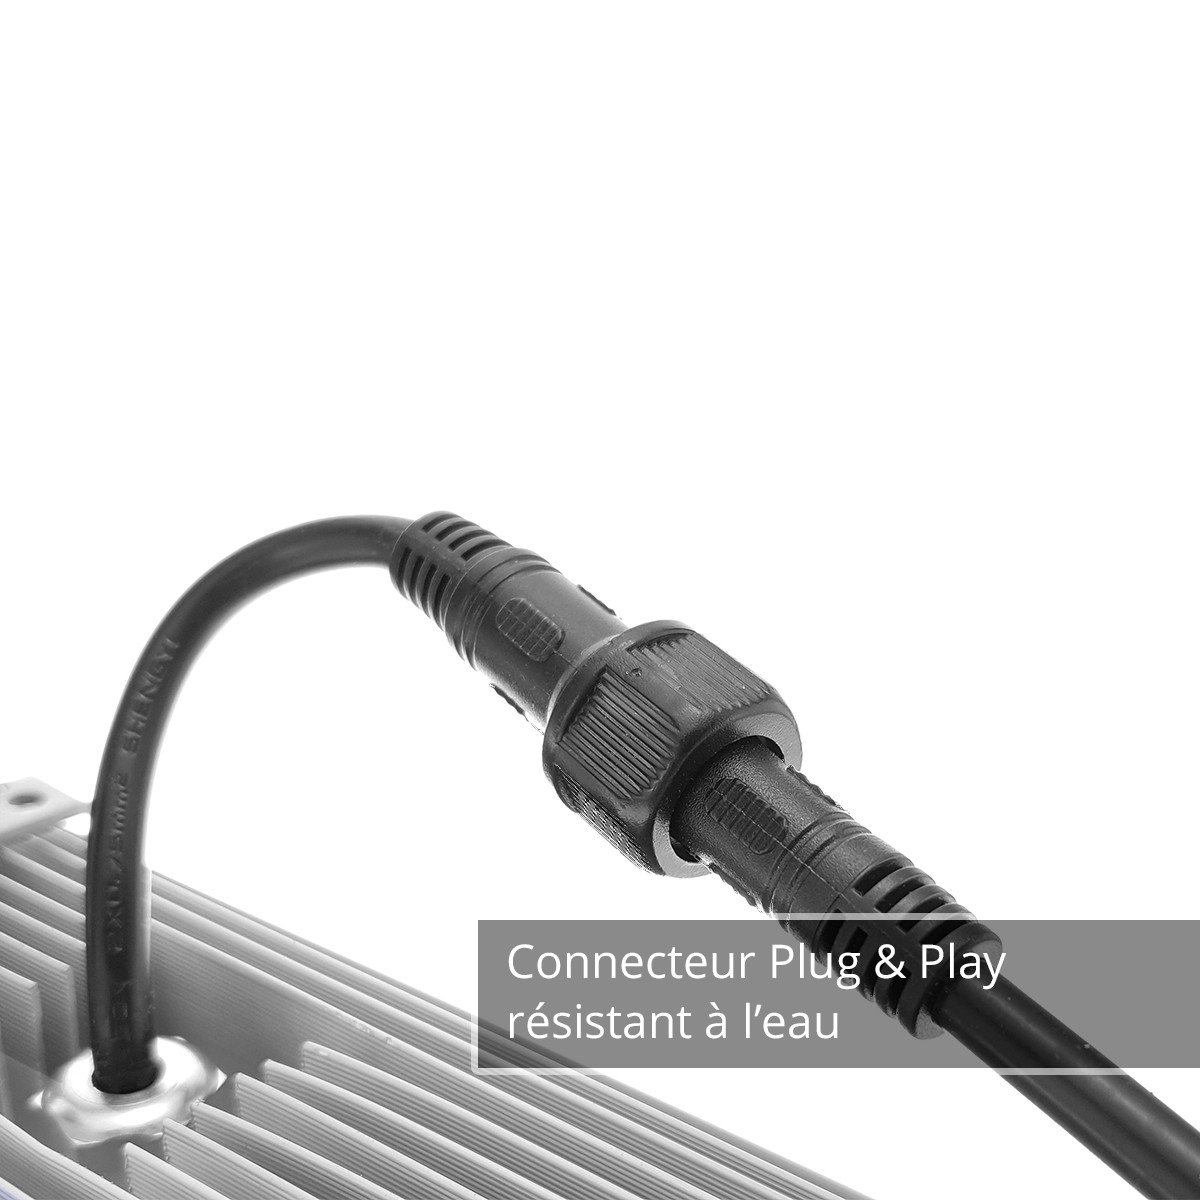 TM 25W 30cm - Lampe horticole LED pour terrariums - Simple à utiliser et performante